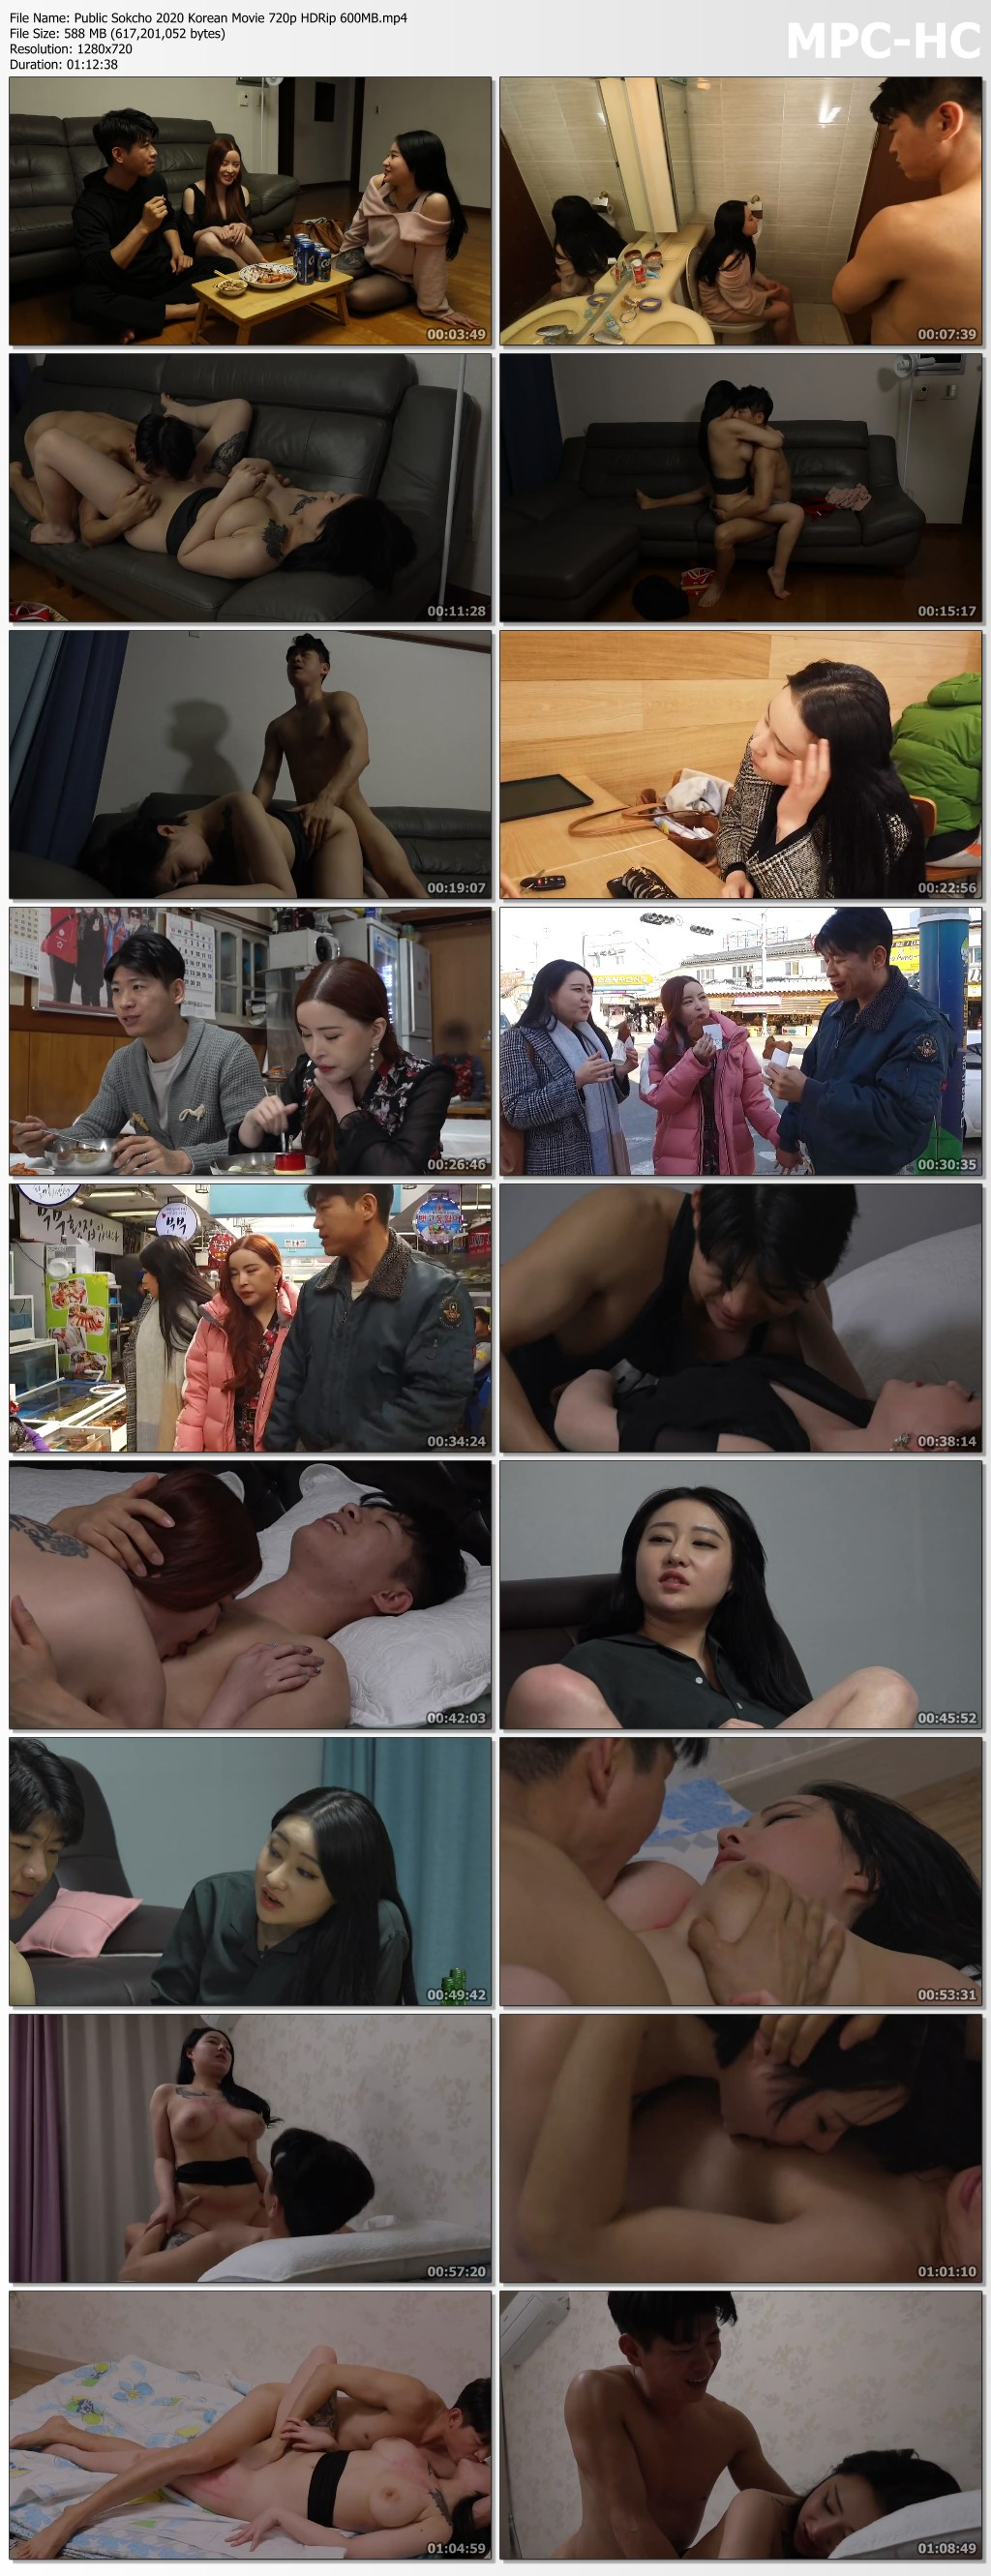 Public Sokcho 2020 Korean Movie 720p HDRip 600MB.mp4 thumbs